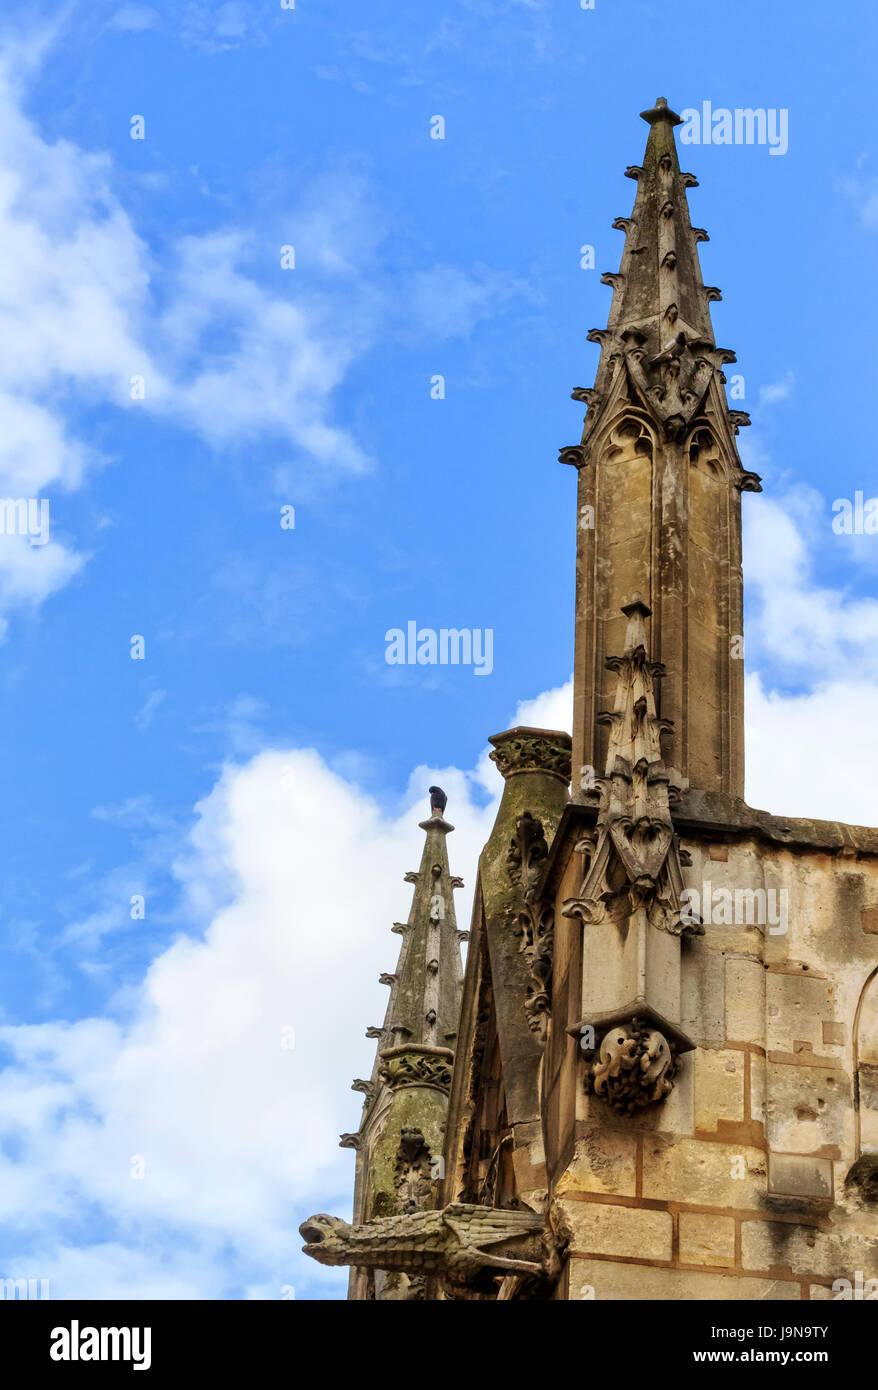 Saint-Séverin church- one of the oldest churches on the Left Bank in the Latin Quarter in Paris - Stock Image